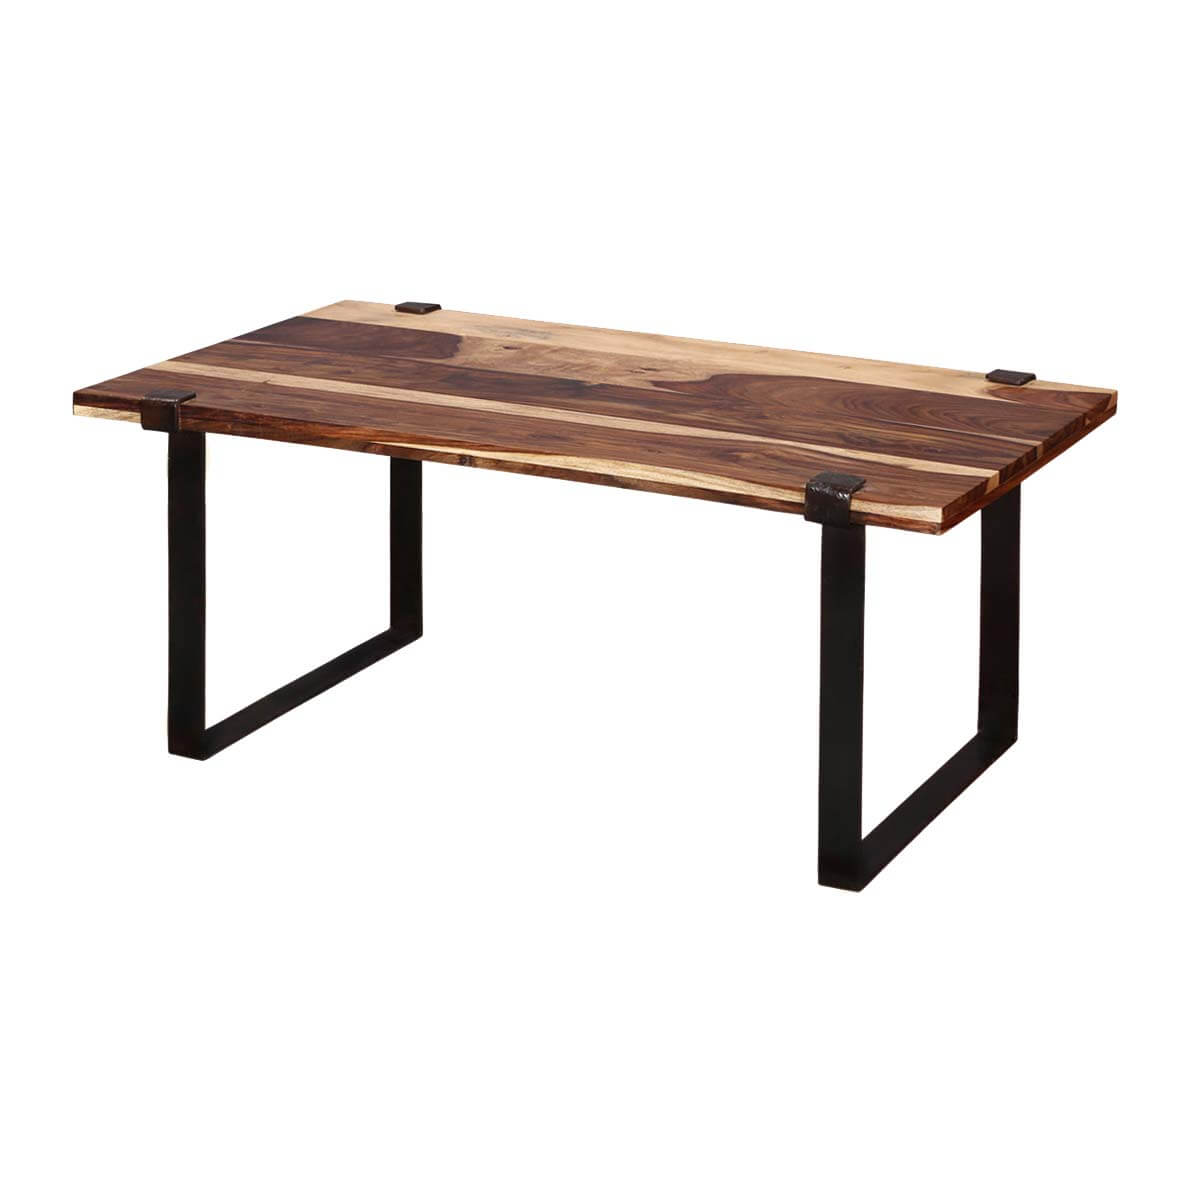 Maryland Stylish Iron legs with Rose Wood Top Accent Coffee Table